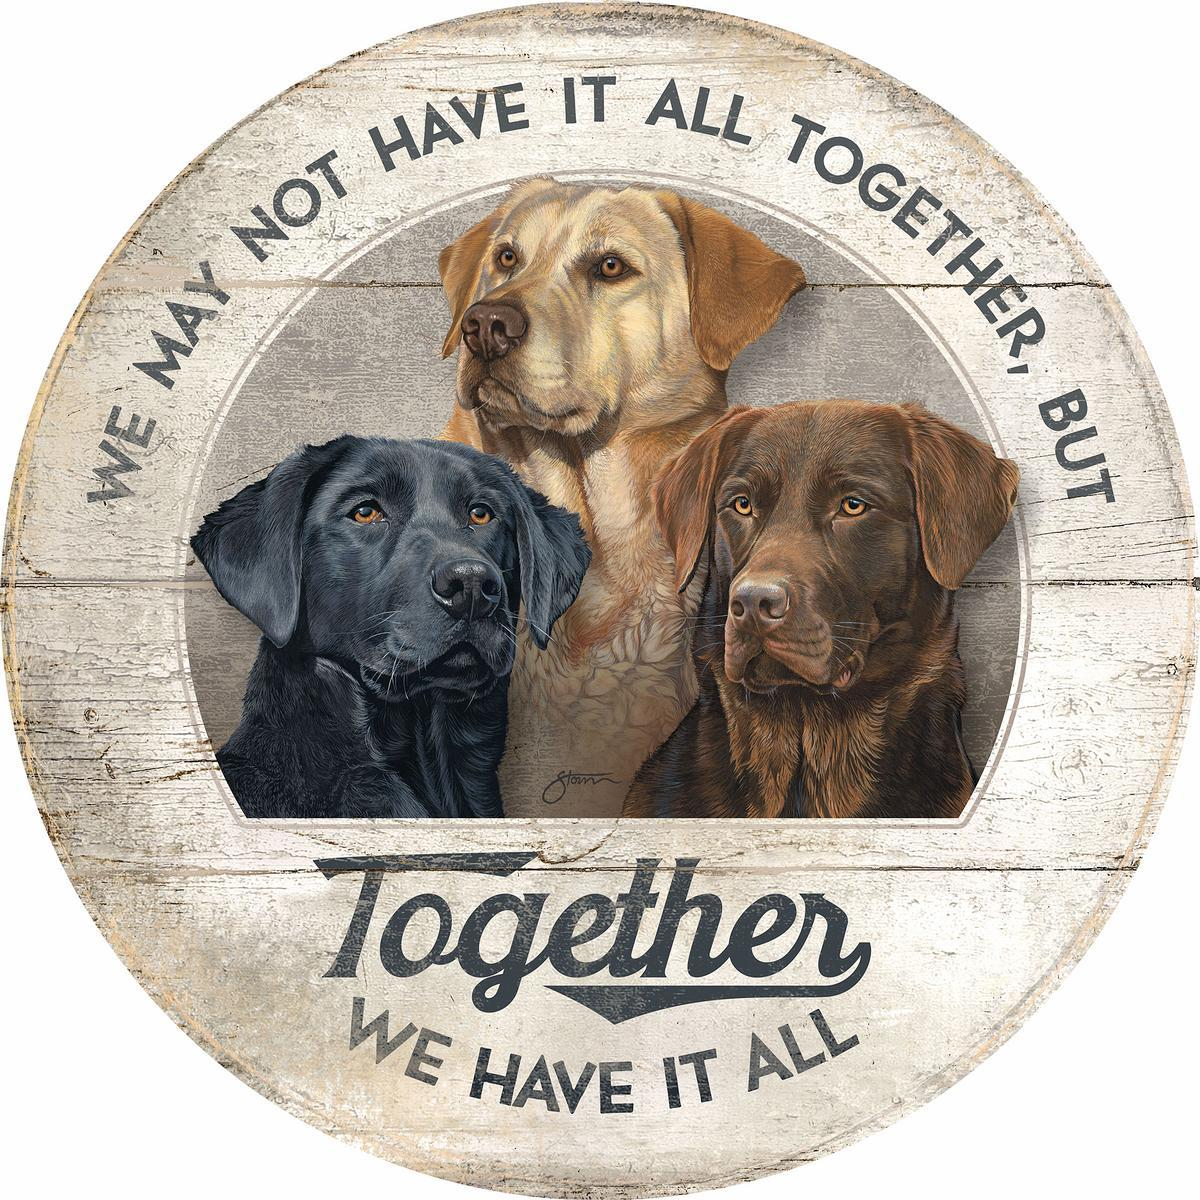 Have it All Together—Dogs.